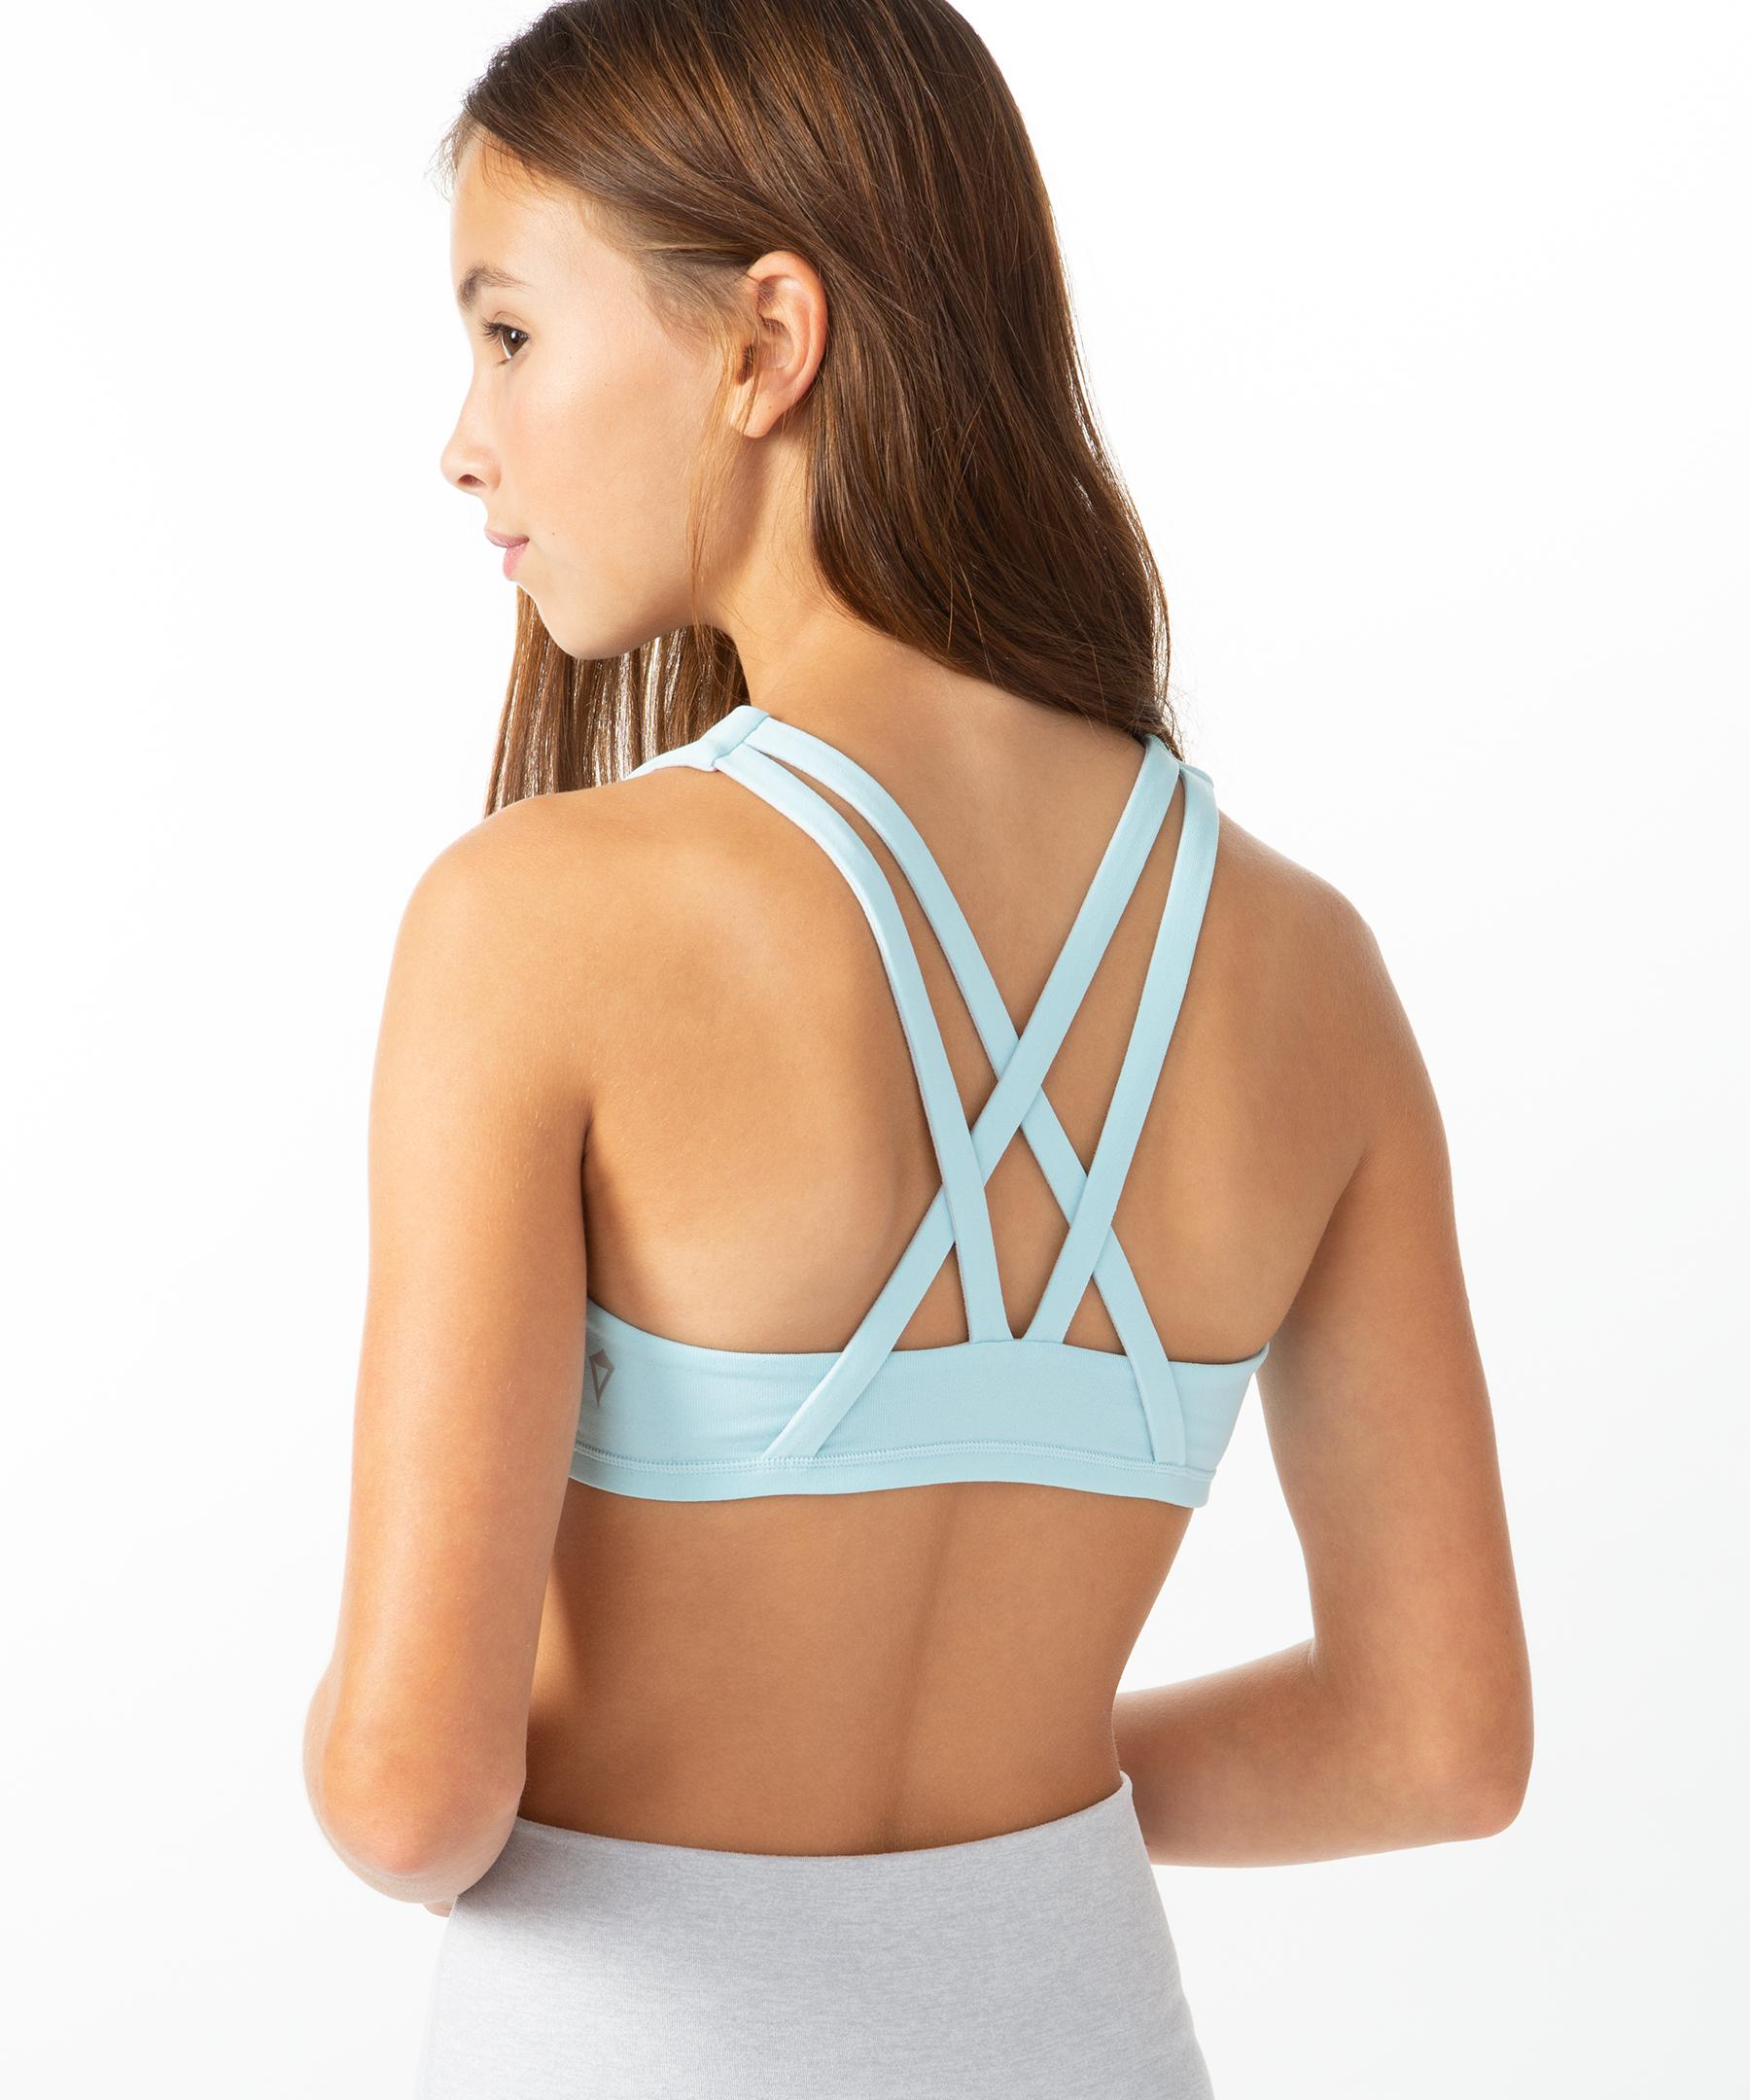 67ec688af5 Lyst - lululemon athletica Complete Focus Bra - Girls in Blue - Save 44%